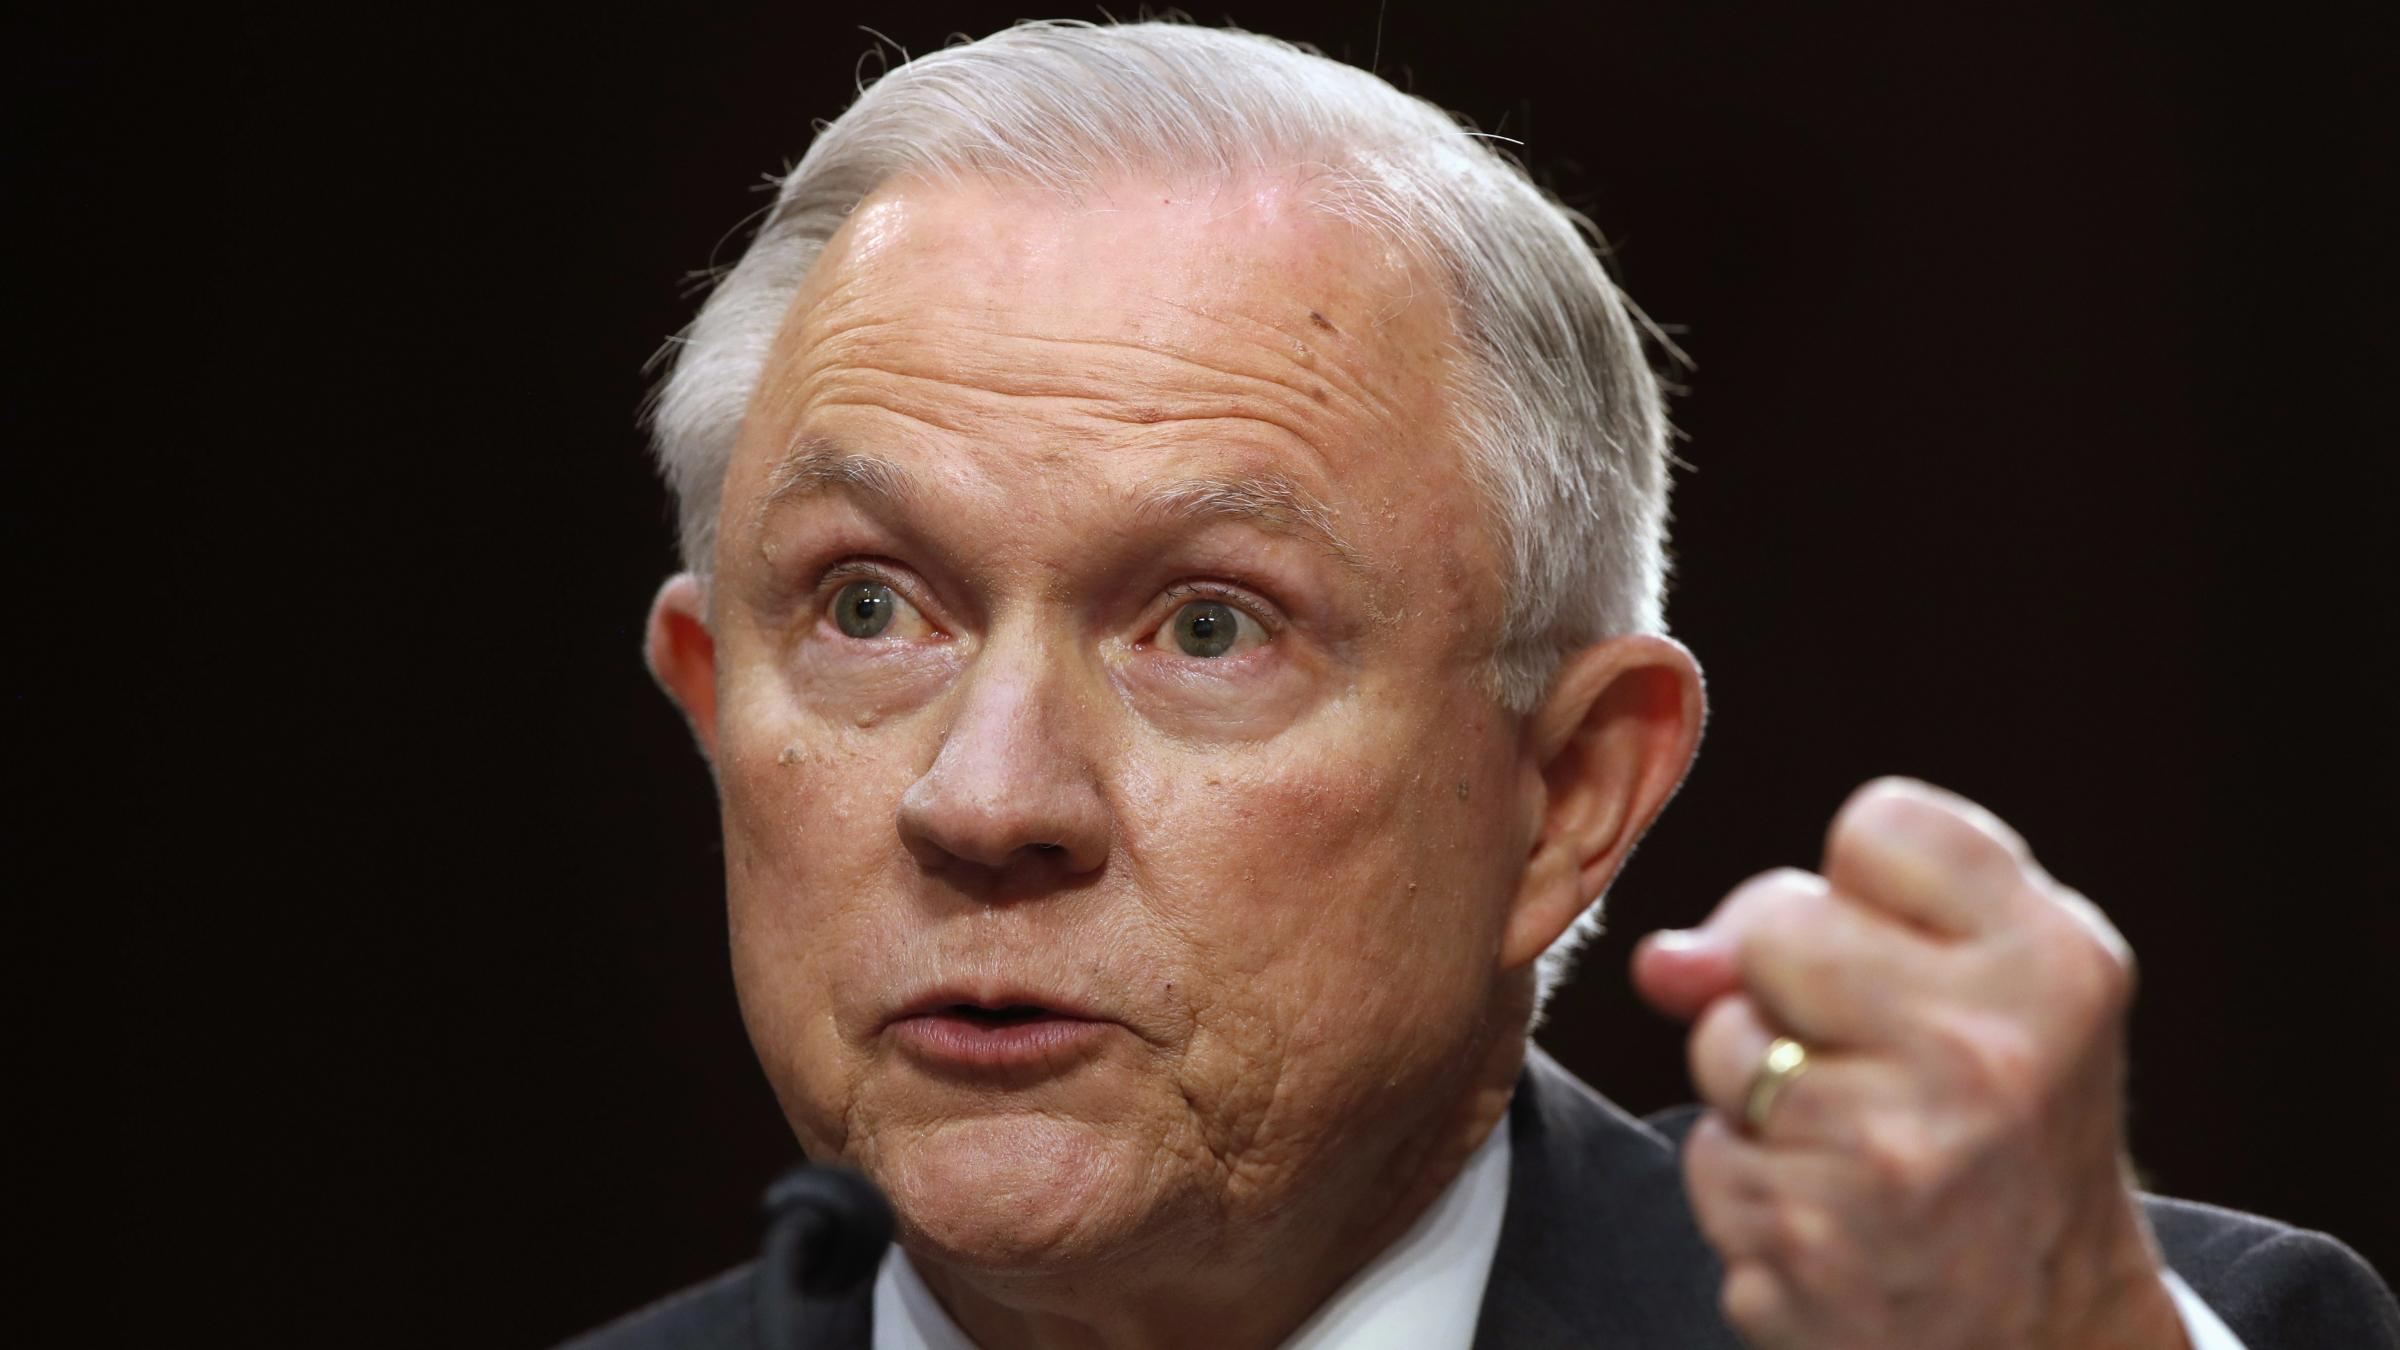 Jeff Sessions: 'Absolutely False' He Communicated with Russians as Trump Campaign Surrogate